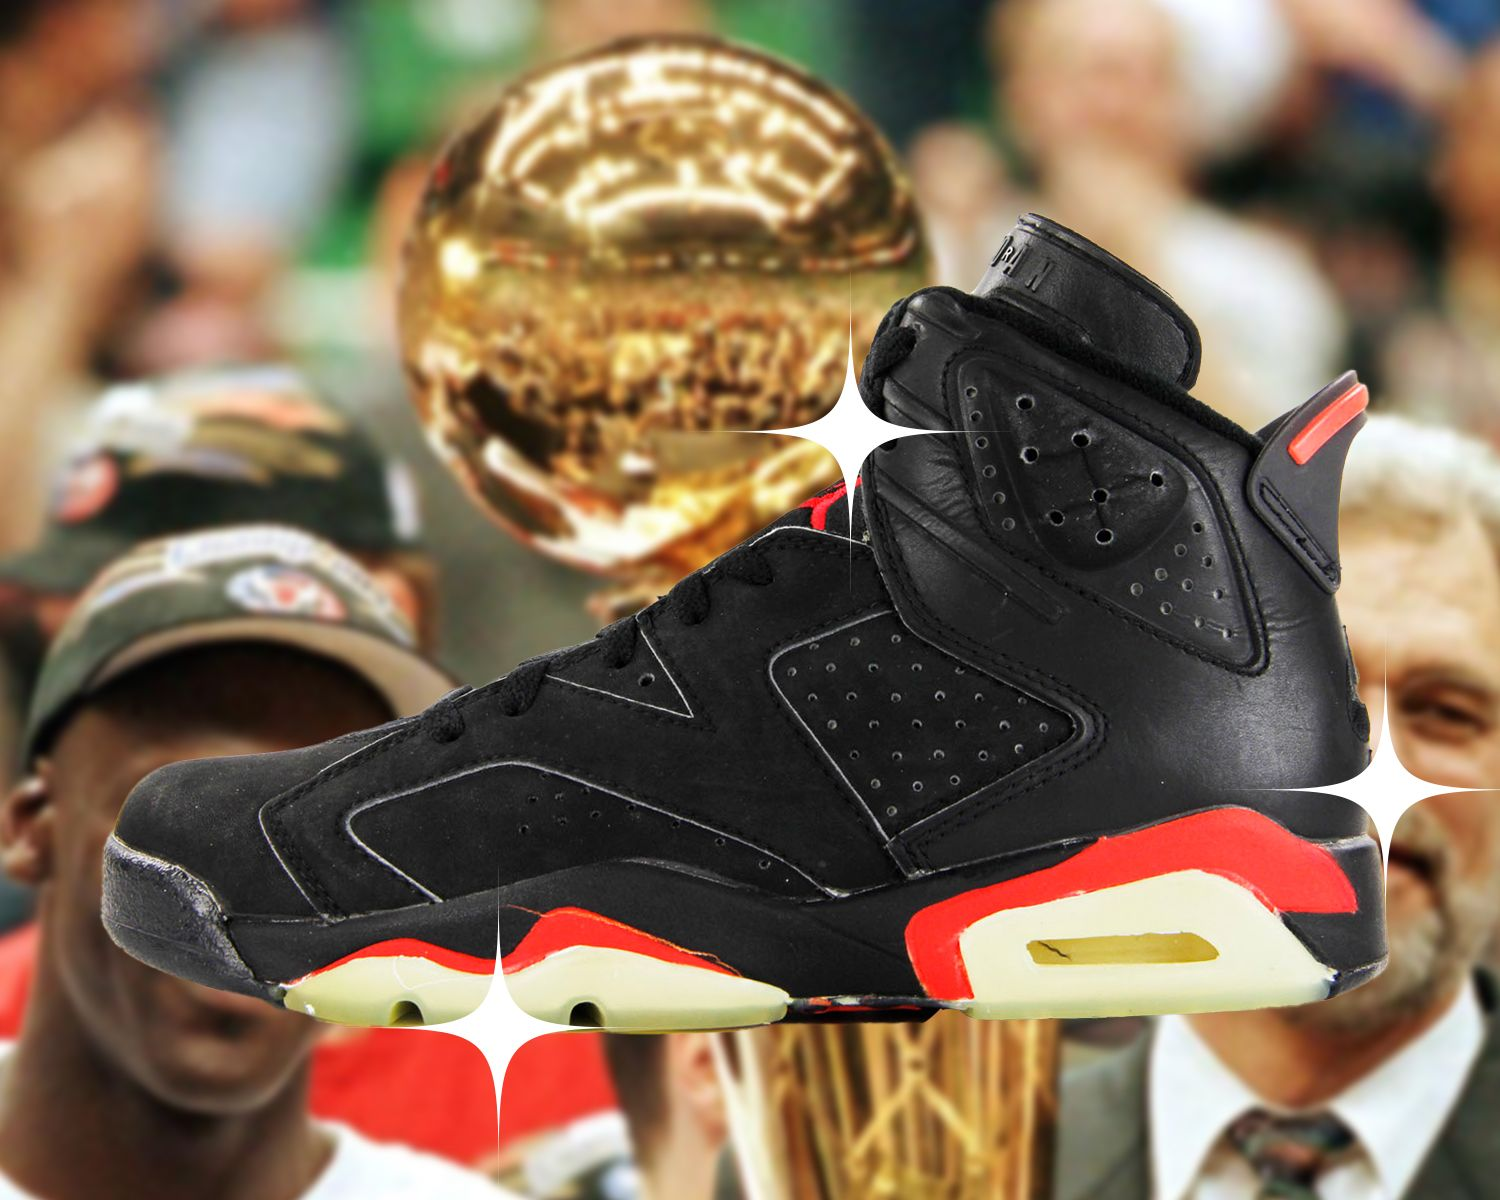 The 6 Sneakers Michael Jordan Wore When He Became a Champion 16